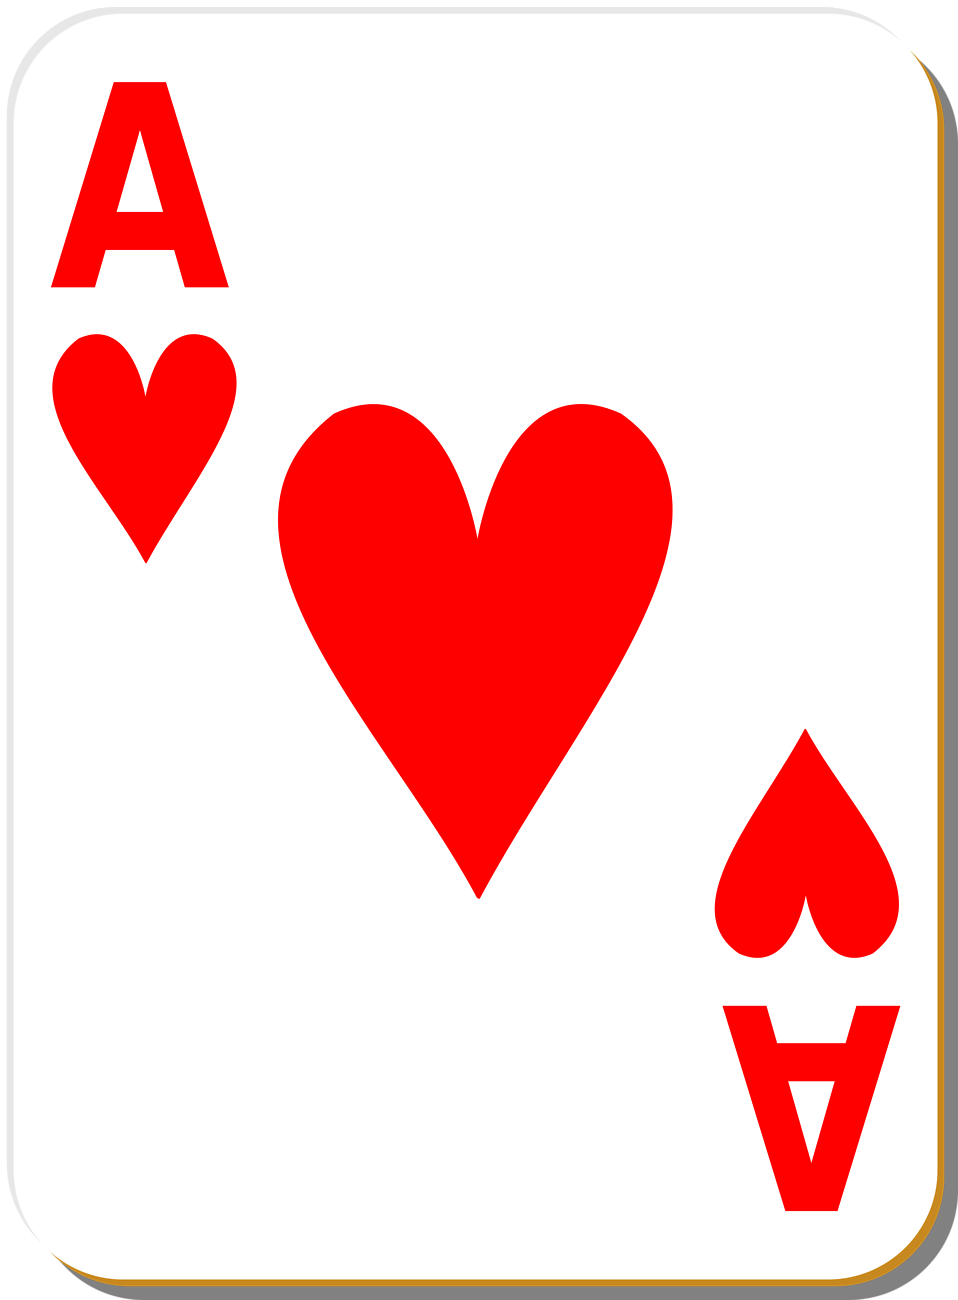 Playing Card | Free Stock Photo | Illustration of an Ace of Hearts ...